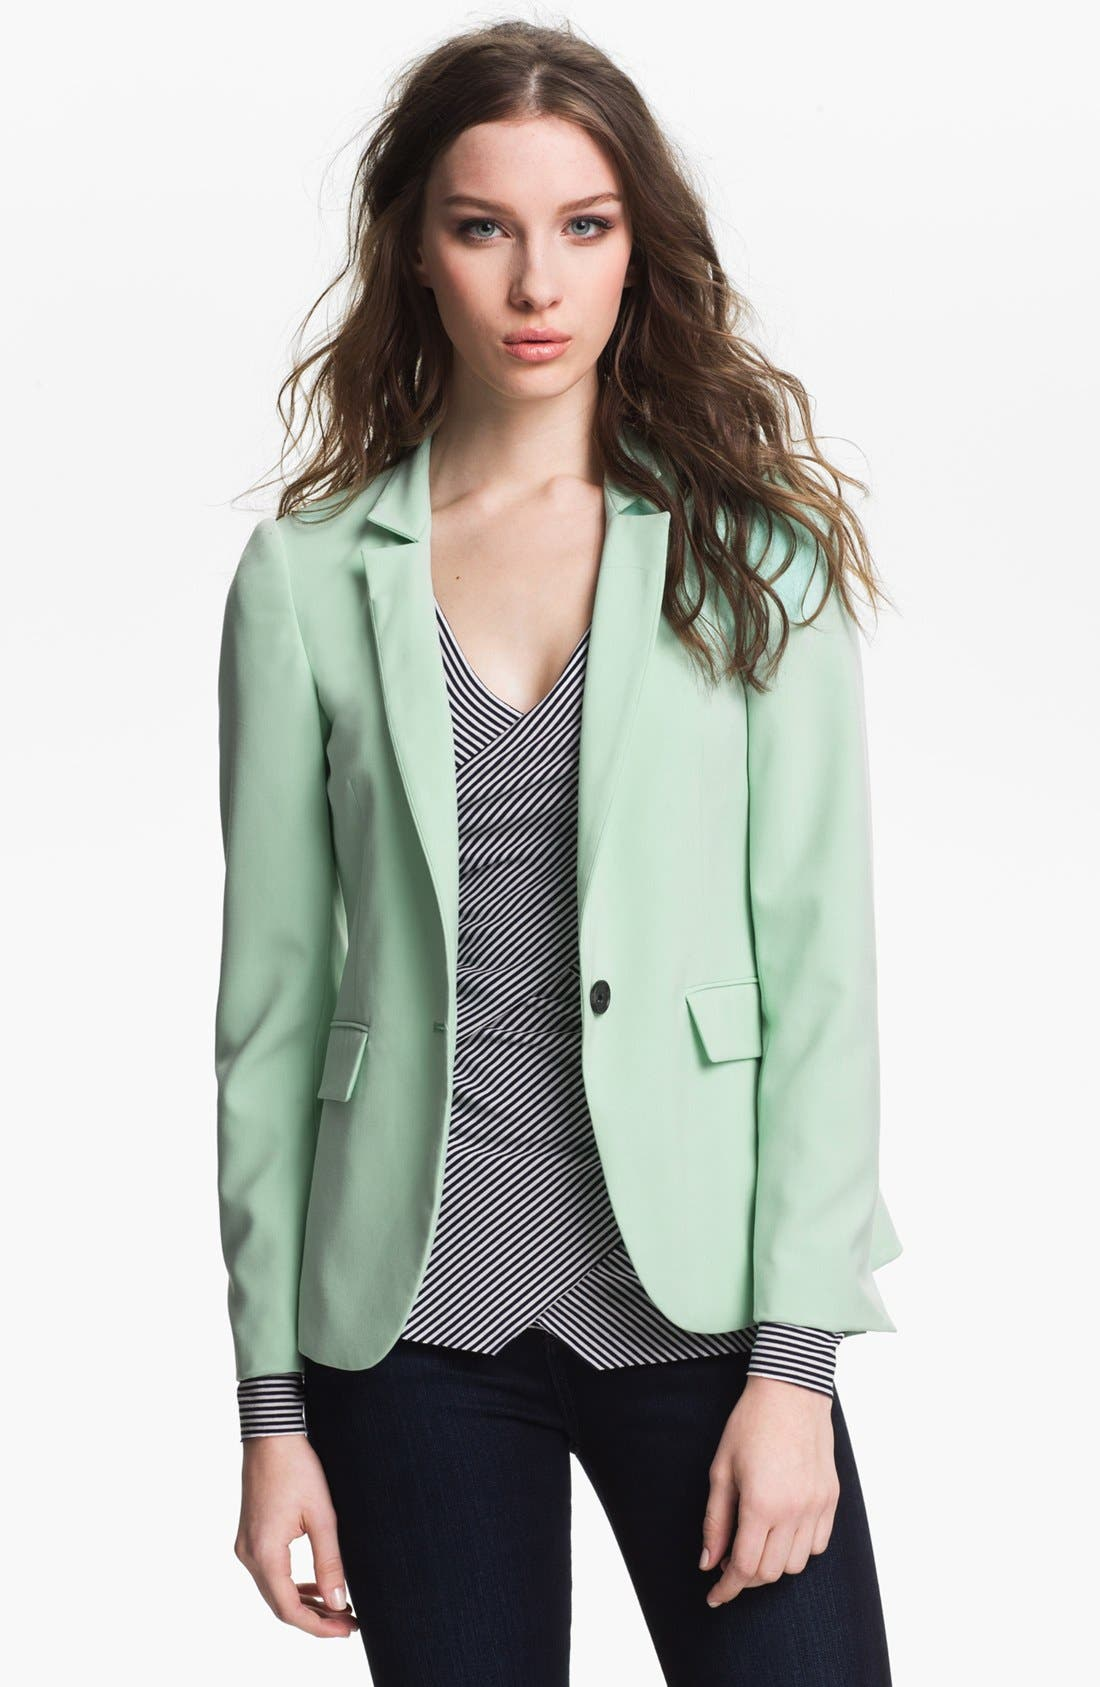 Alternate Image 1 Selected - Vince Camuto One Button Blazer (Petite)